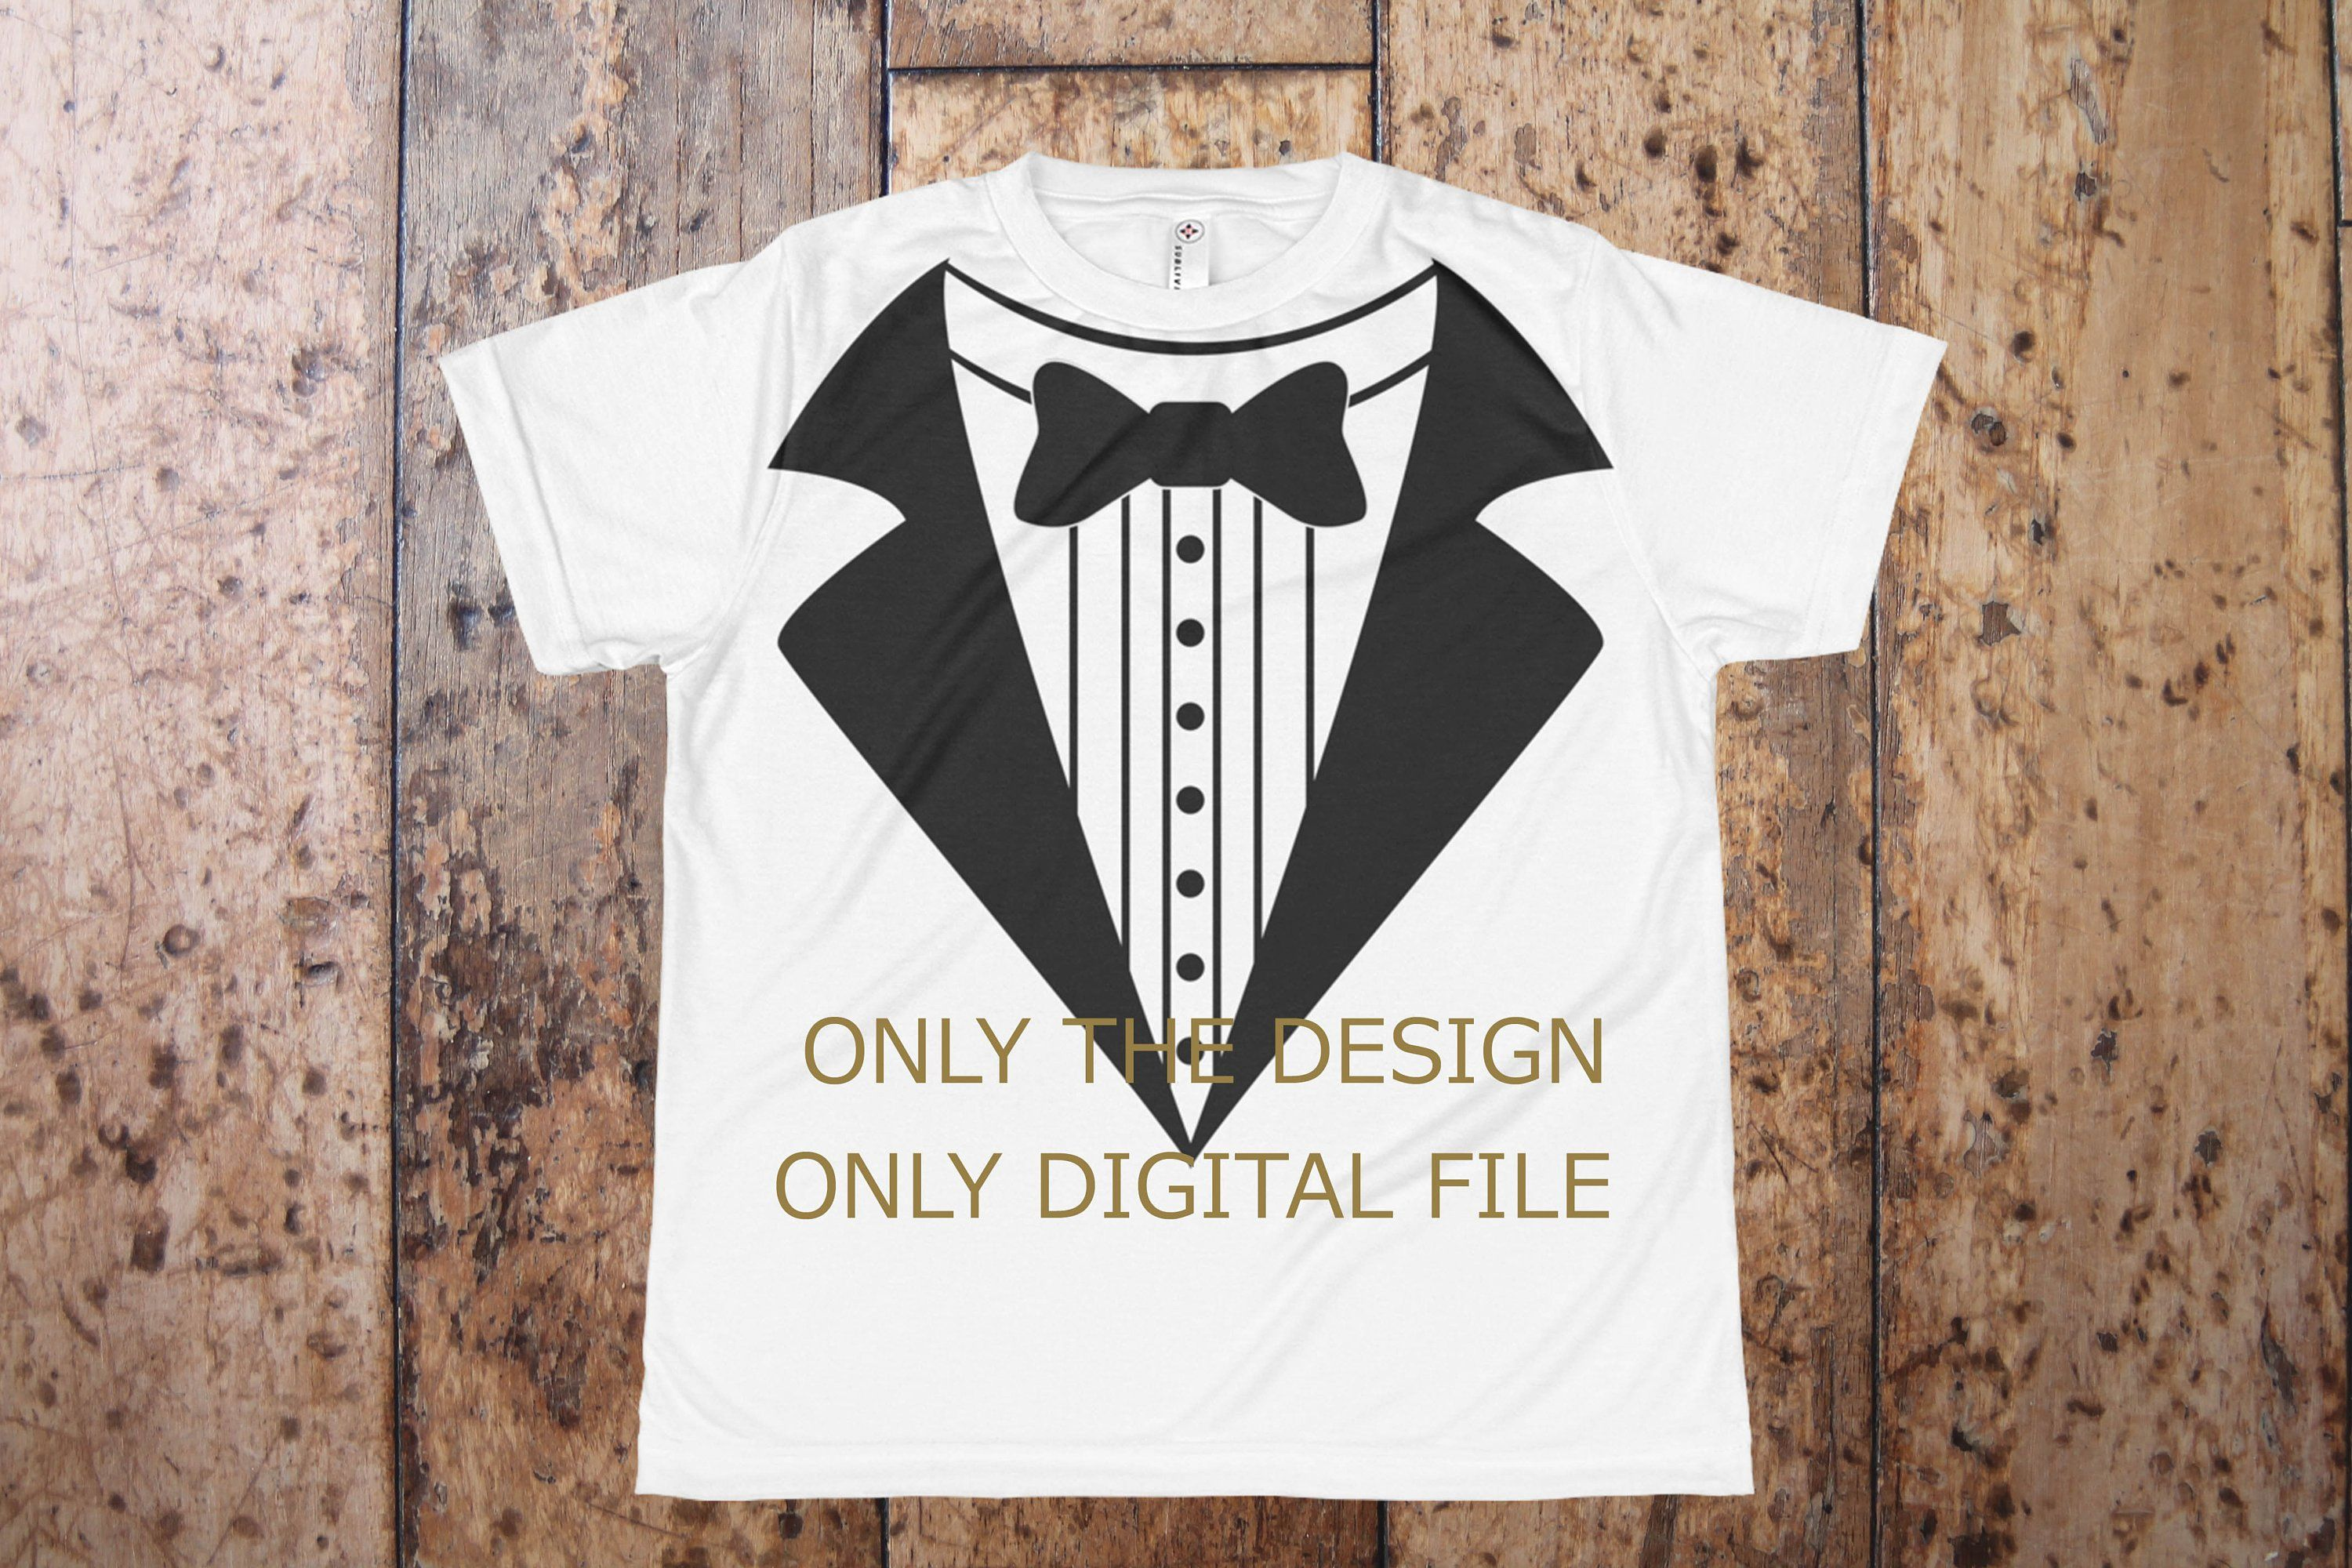 5587e76f25c0 Tuxedo T Shirt Design Download Commercial Use OK Wedding Tuxedo for Kids  Event Security Shirt Party Security by MarisCuteBunny on Etsy